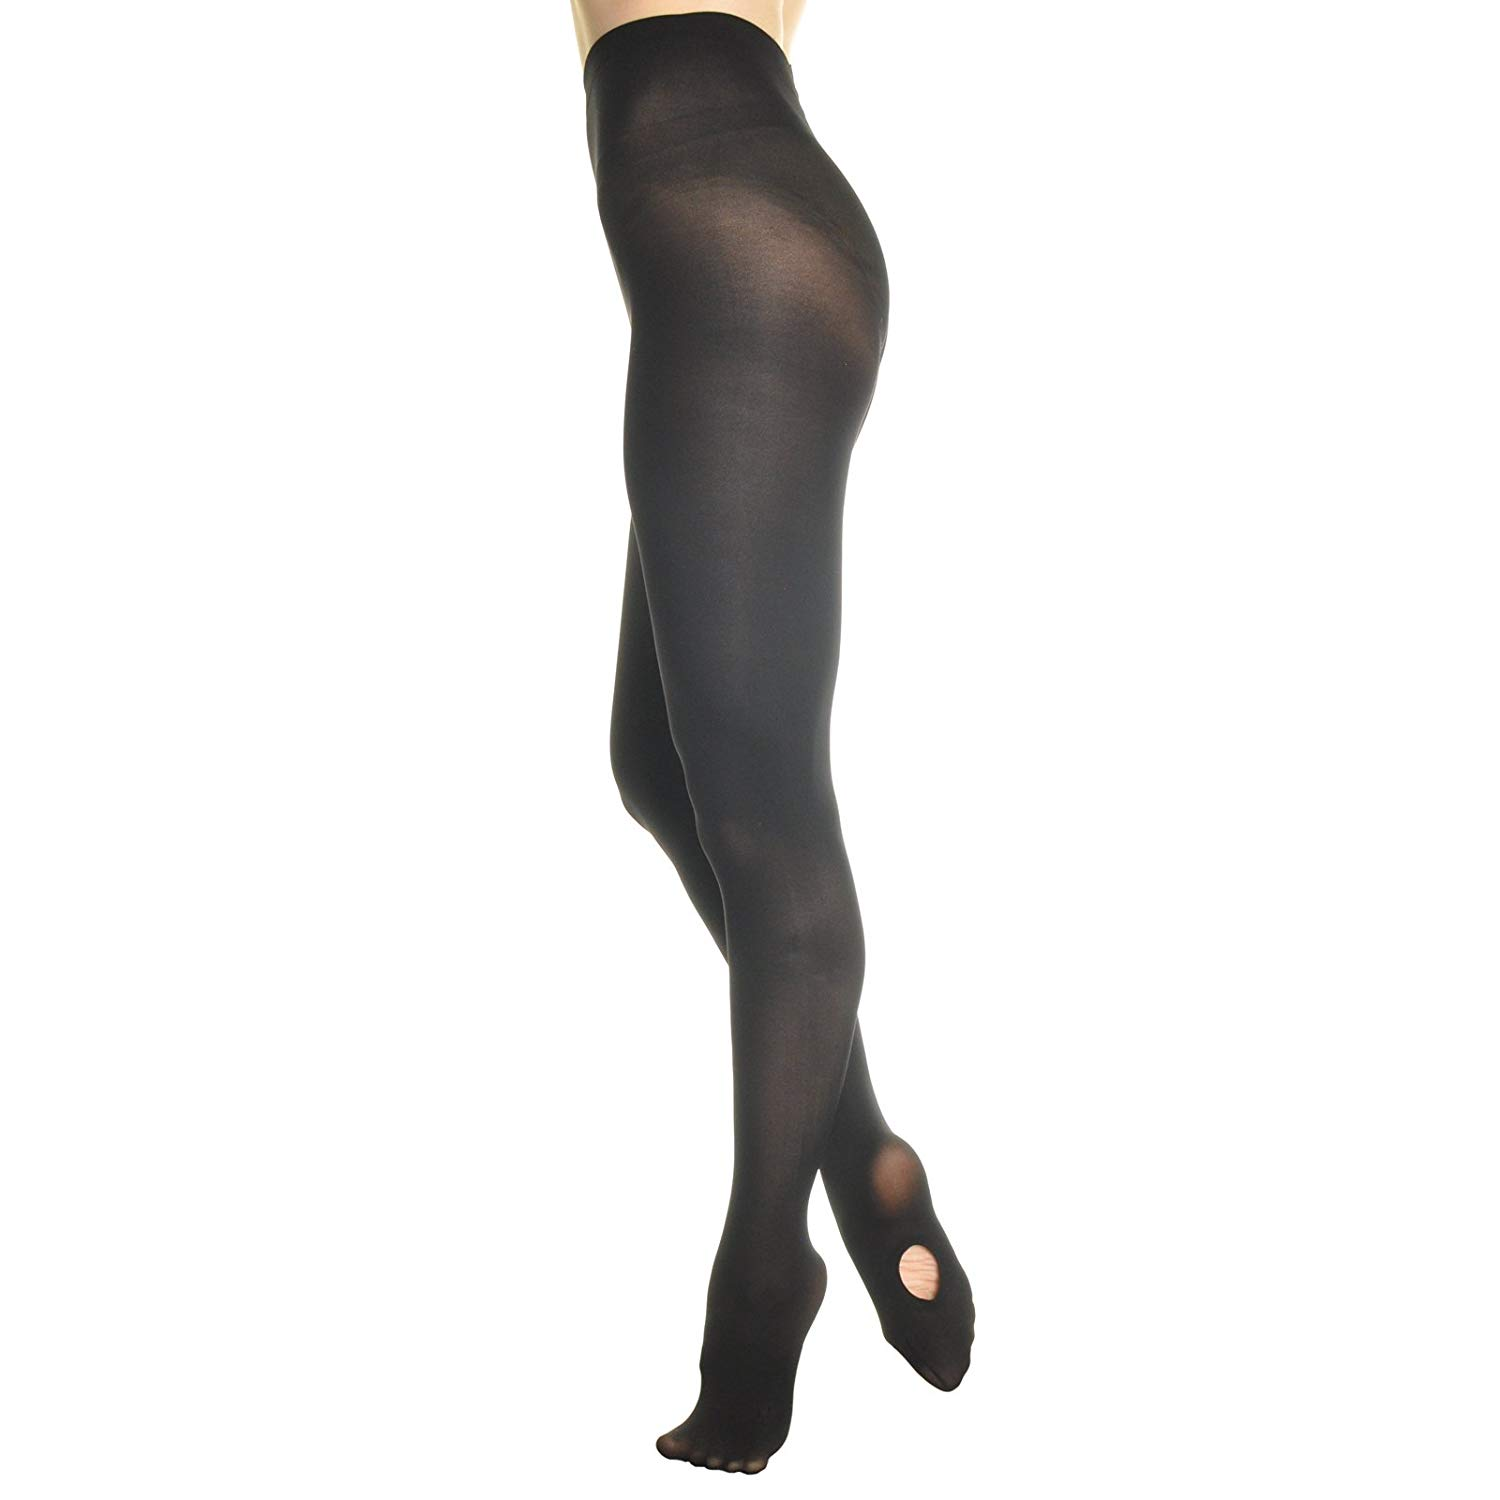 06cb8c664a0ca Cheap Angelina Tights, find Angelina Tights deals on line at Alibaba.com